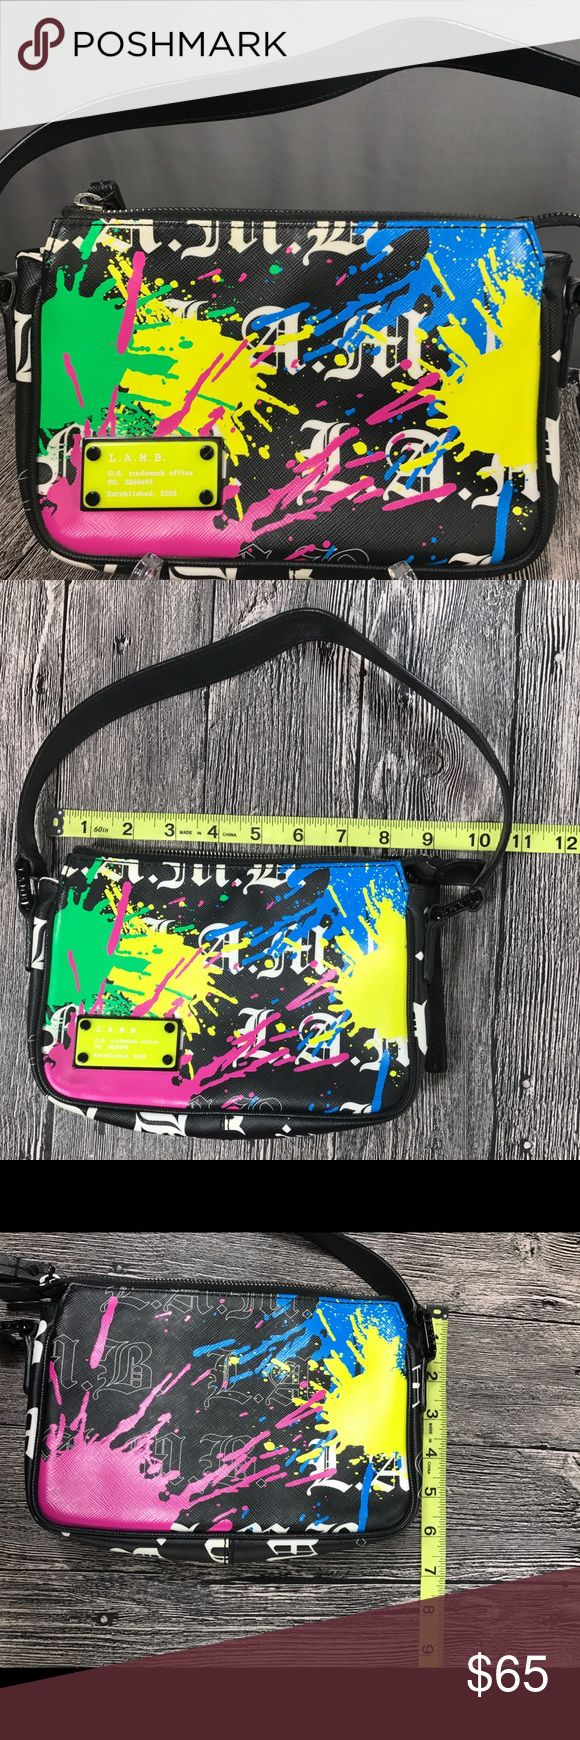 """L.A.M.B. Baron Spectral Shoulder Bag L.A.M.B. Baron Spectral Shoulder Bag Rare Baron style LAMB bag in the Spectral print, black background with L.A.M.B. logo print in white and neon paint splatters in pink, blue, green, and yellow. Zip closure, interior features one small zip pocket. Size: 8.5"""" Wide x 6"""" High x 2""""L; Drop of 6.5"""" in Excellent condition. Visit my closet to see matching wallet! L.A.M.B. Bags Mini Bags"""